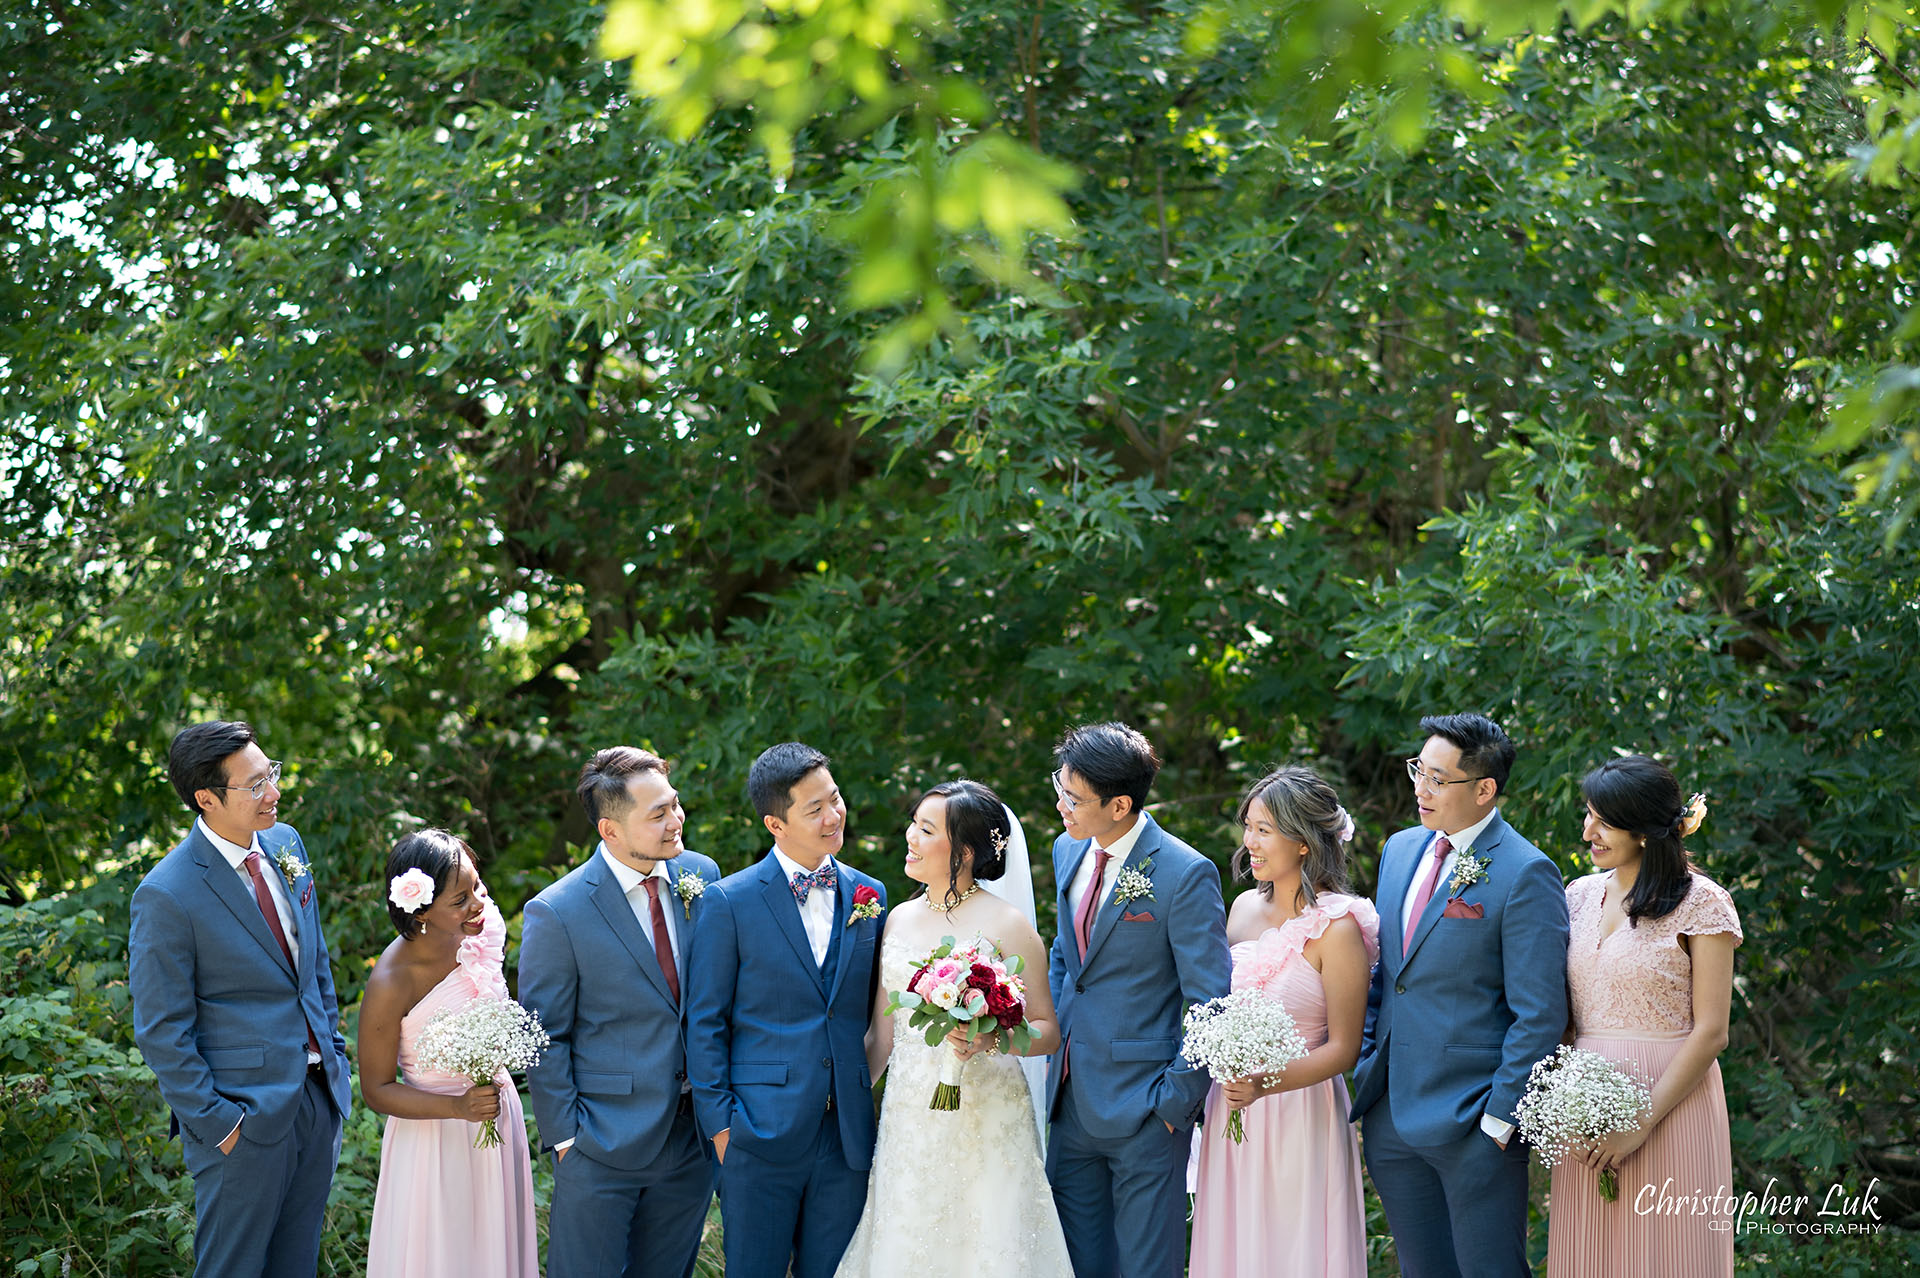 Christopher Luk Toronto Wedding Photographer Bridle Trail Baptist Church Unionville Main Street Crystal Fountain Event Venue Bride Groom Natural Photojournalistic Candid Creative Portrait Session Pictures Bridal Party Best Man Groomsmen Maid of Honour Bridesmaids Forest Landscape